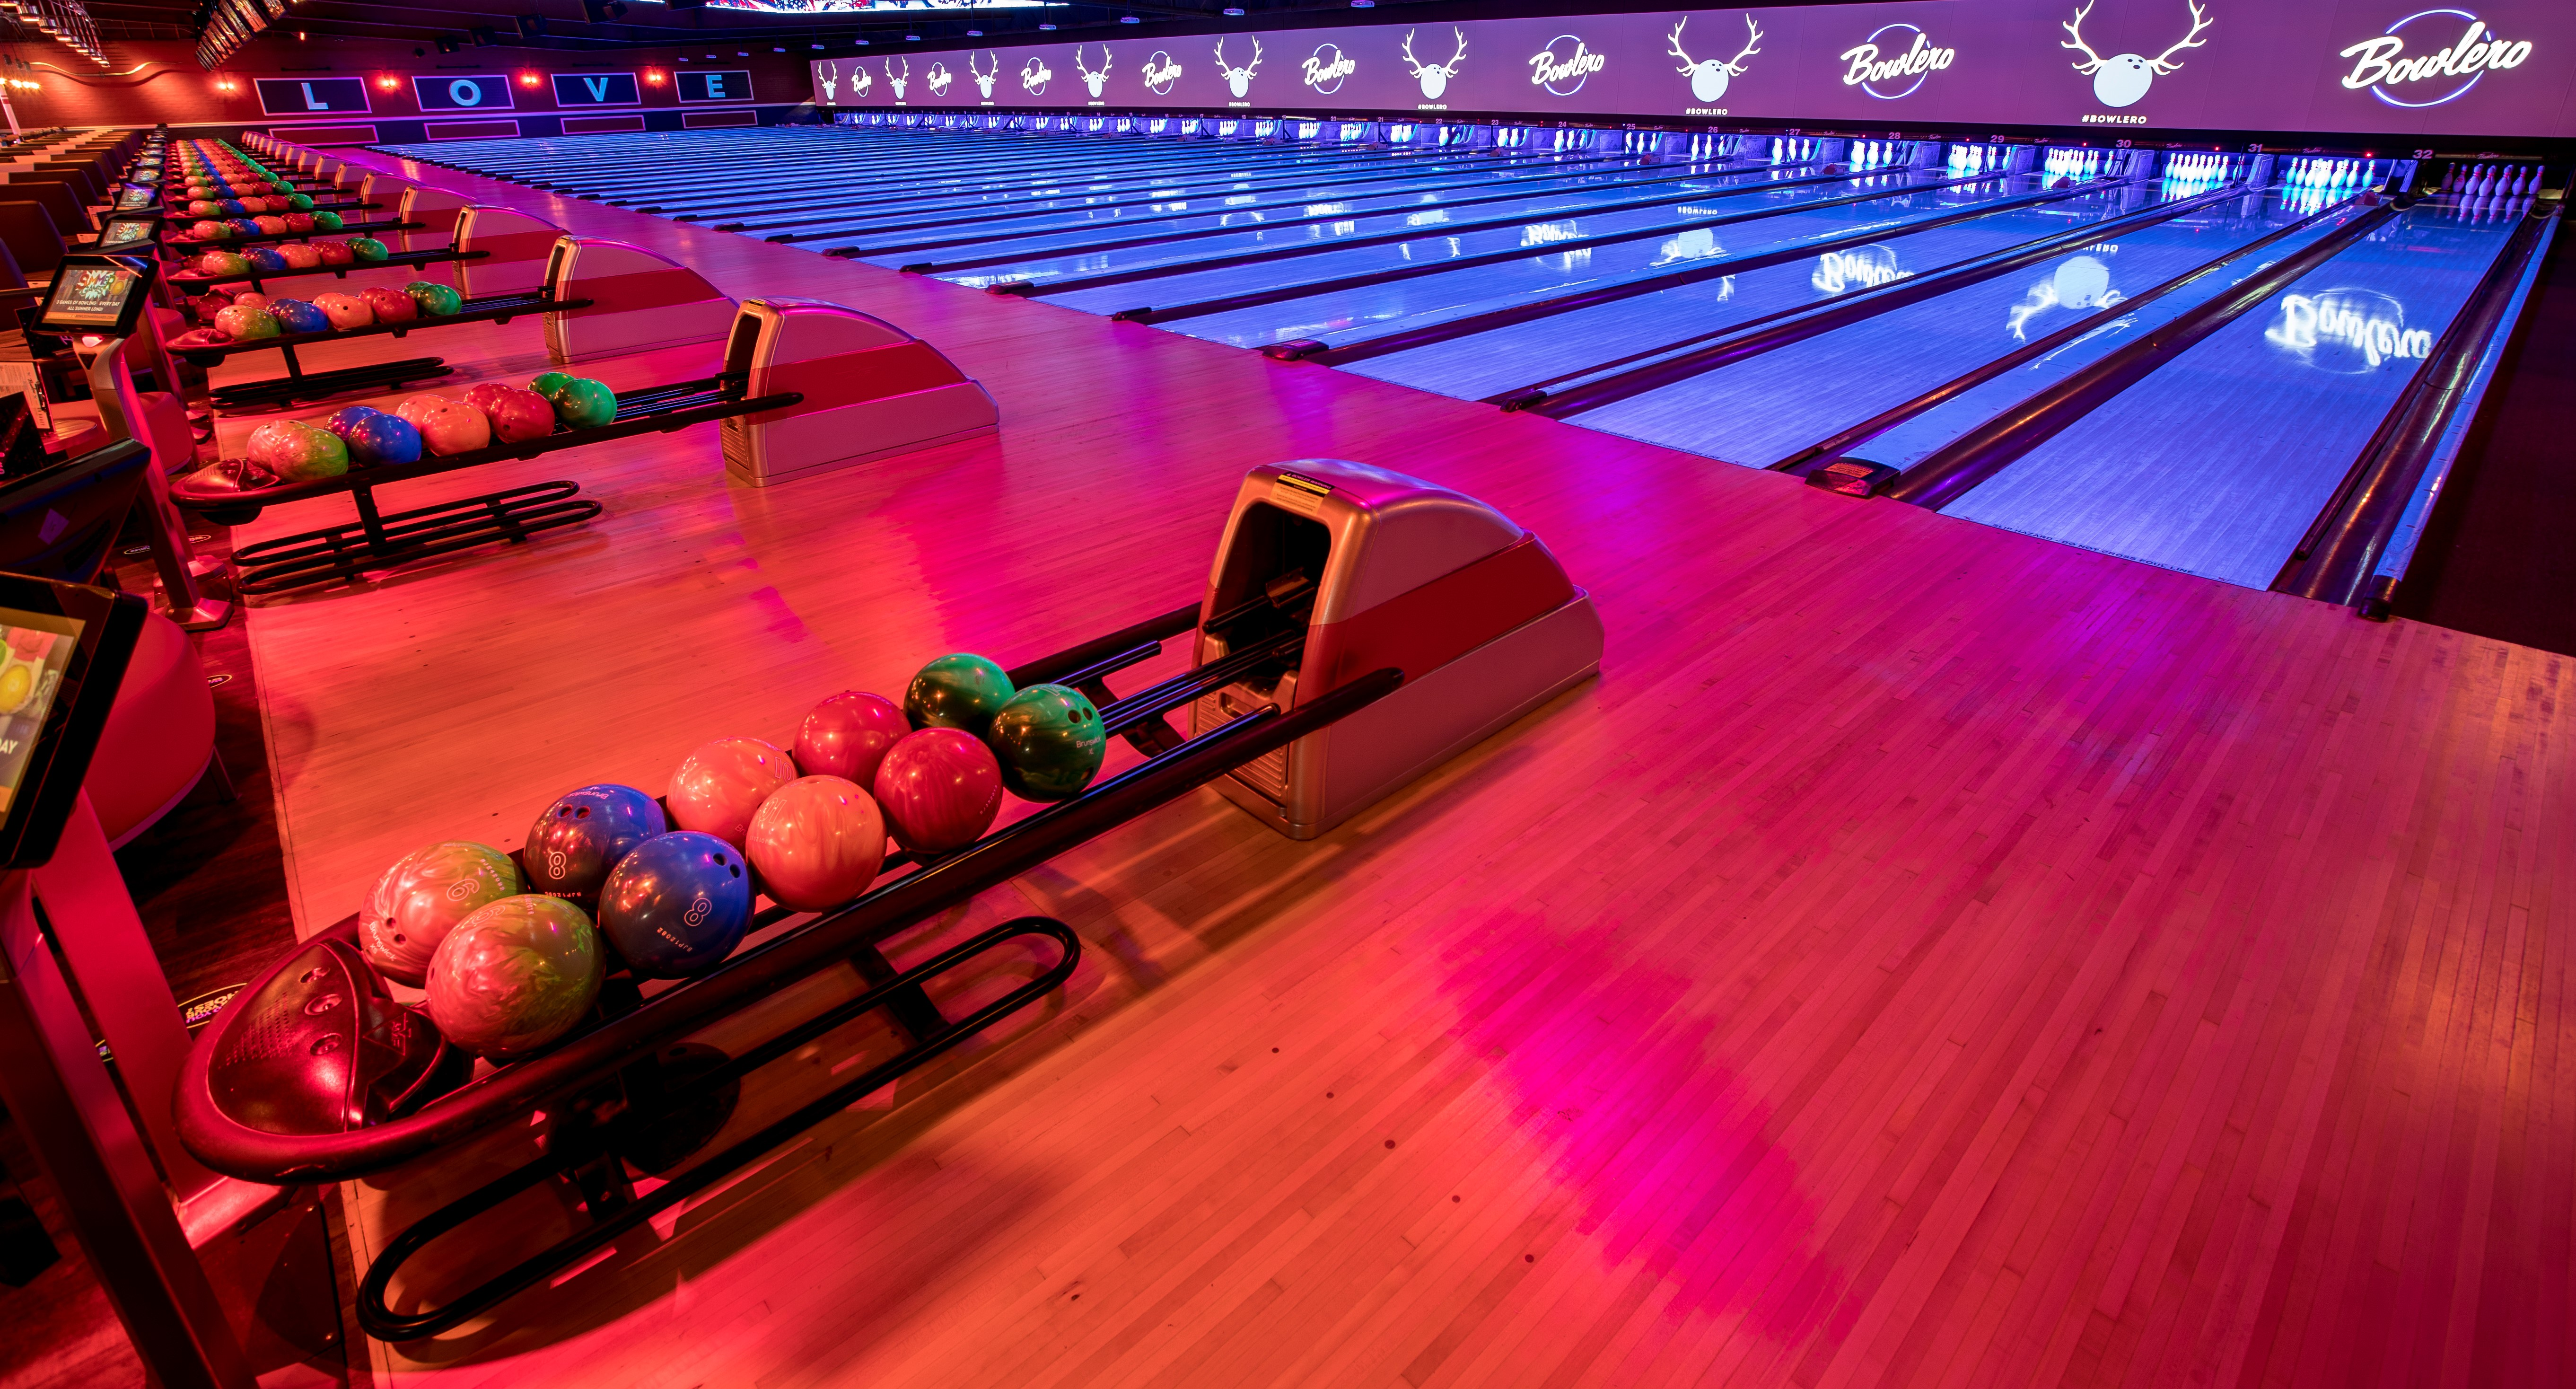 The King Pin event space at Bowlero San Jose in Bay Area